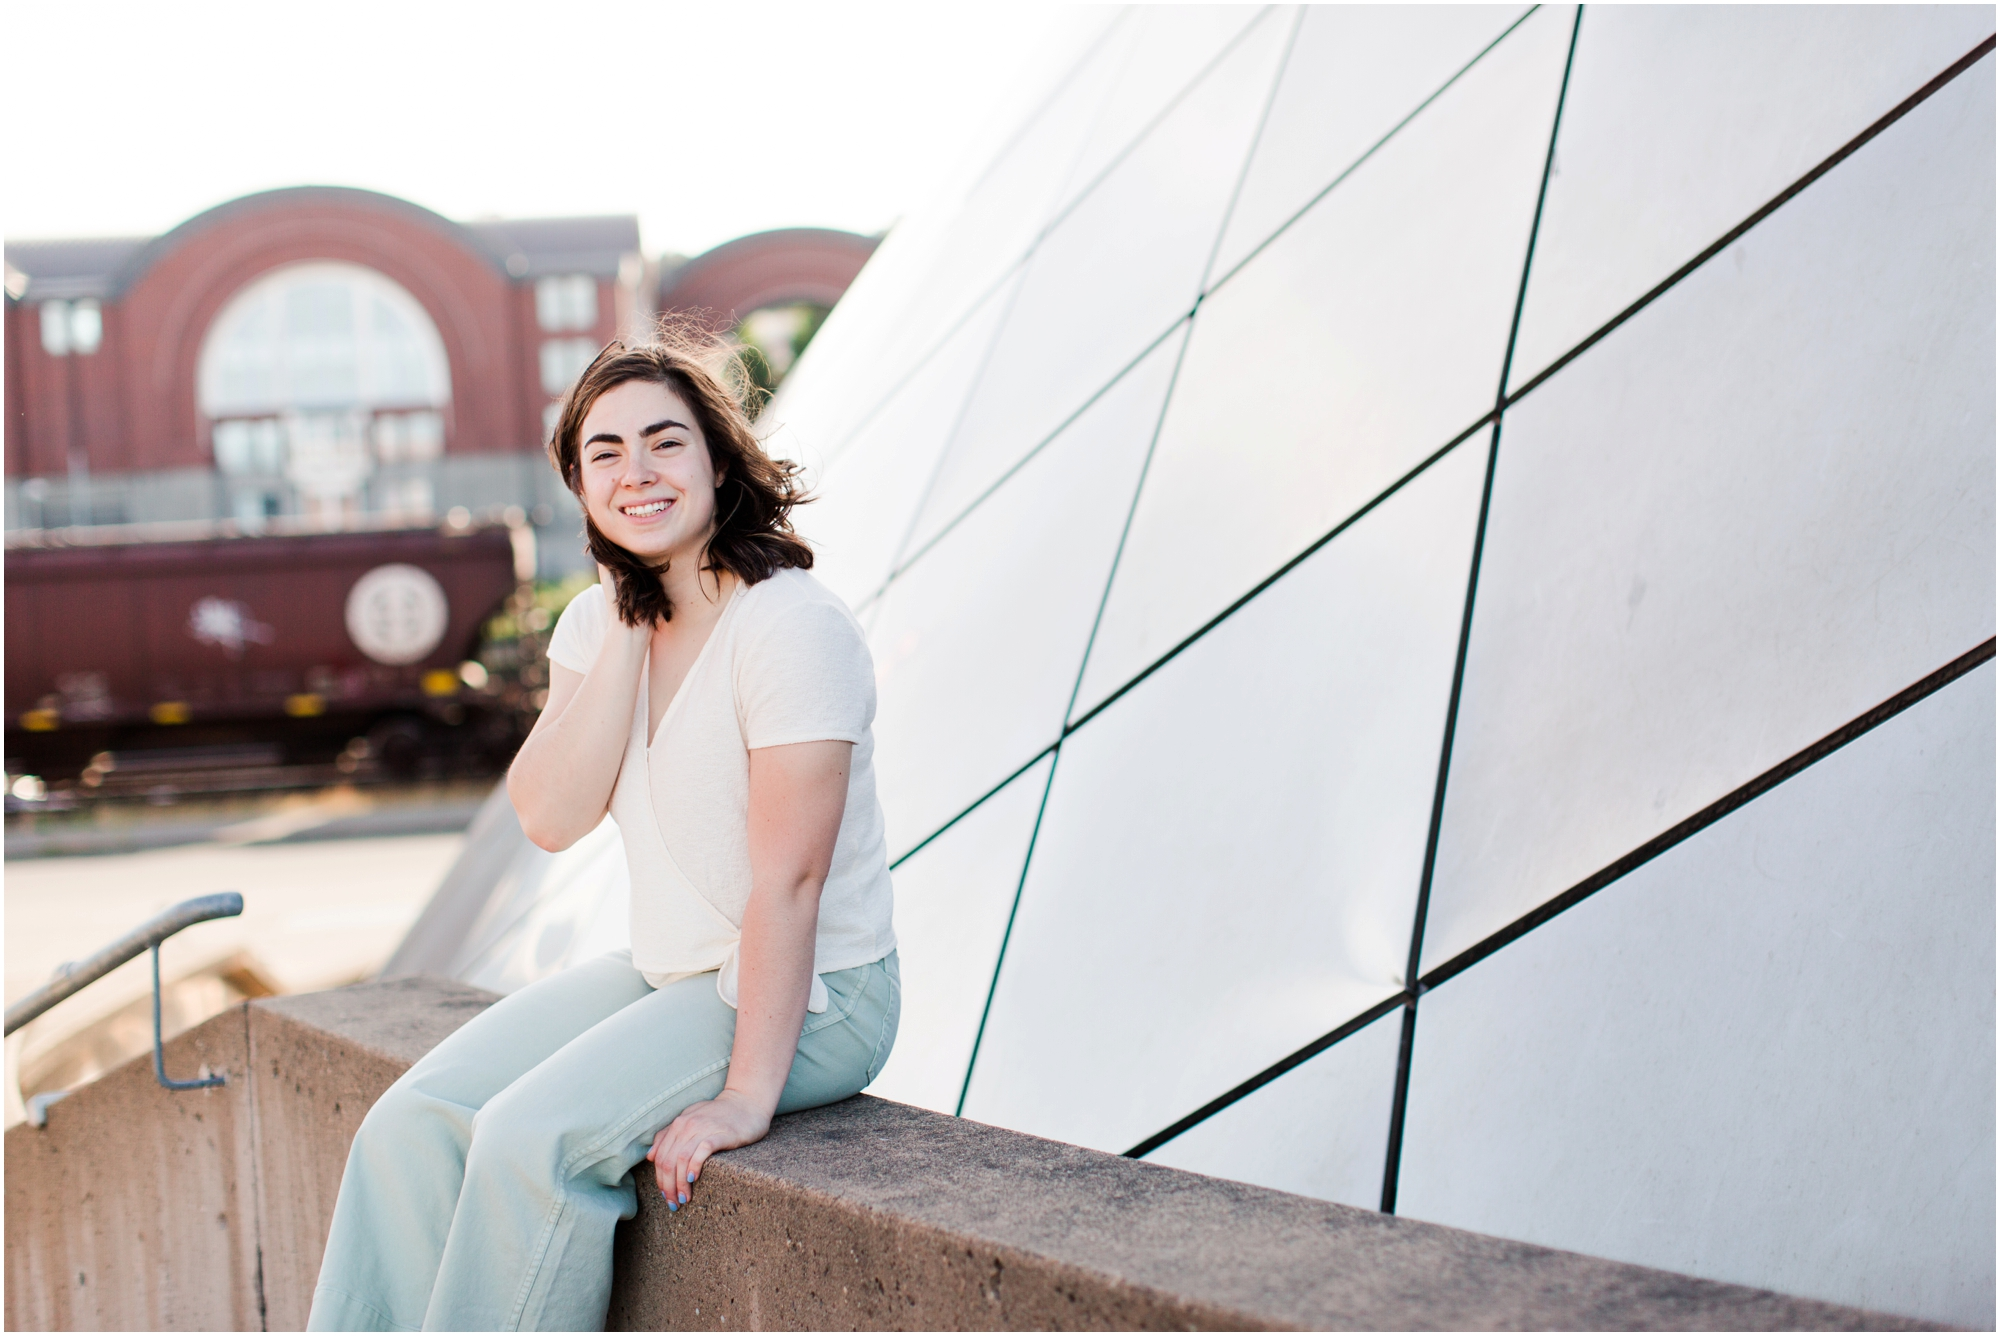 Senior portrait shoot at UW Tacoma campus and Bridge of Glass. Photos by Briana Calderon Photography based in the greater Seattle Area._1234.jpg